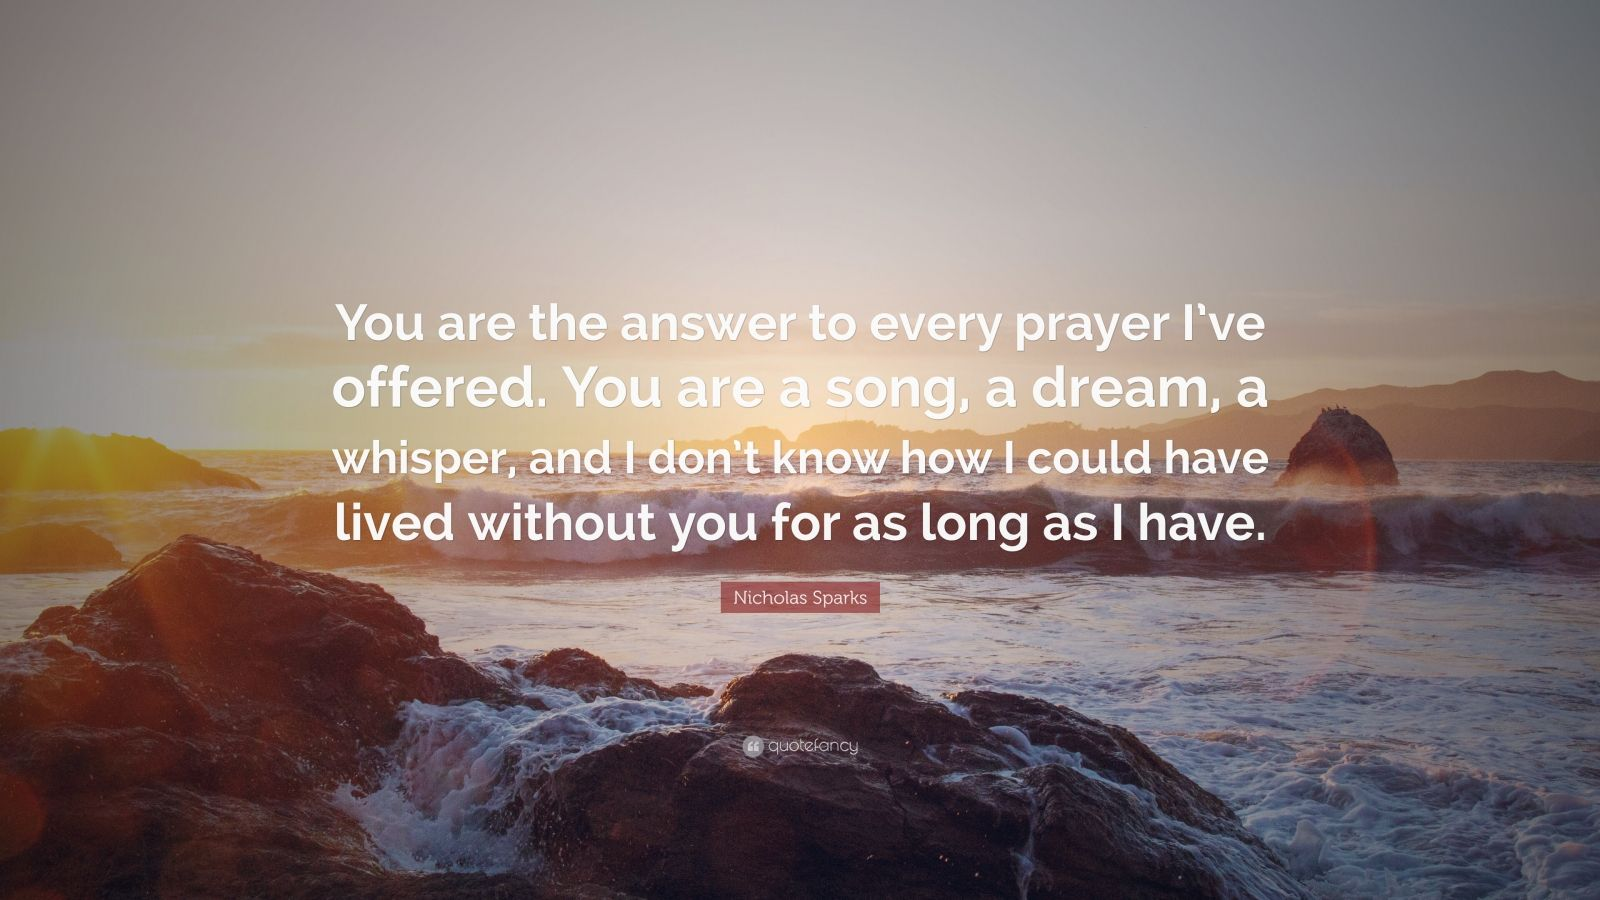 "Nicholas Sparks Quote: ""You are the answer to every prayer I've offered. You are a song, a dream, a whisper, and I don't know how I could have lived without you for as long as I have."""